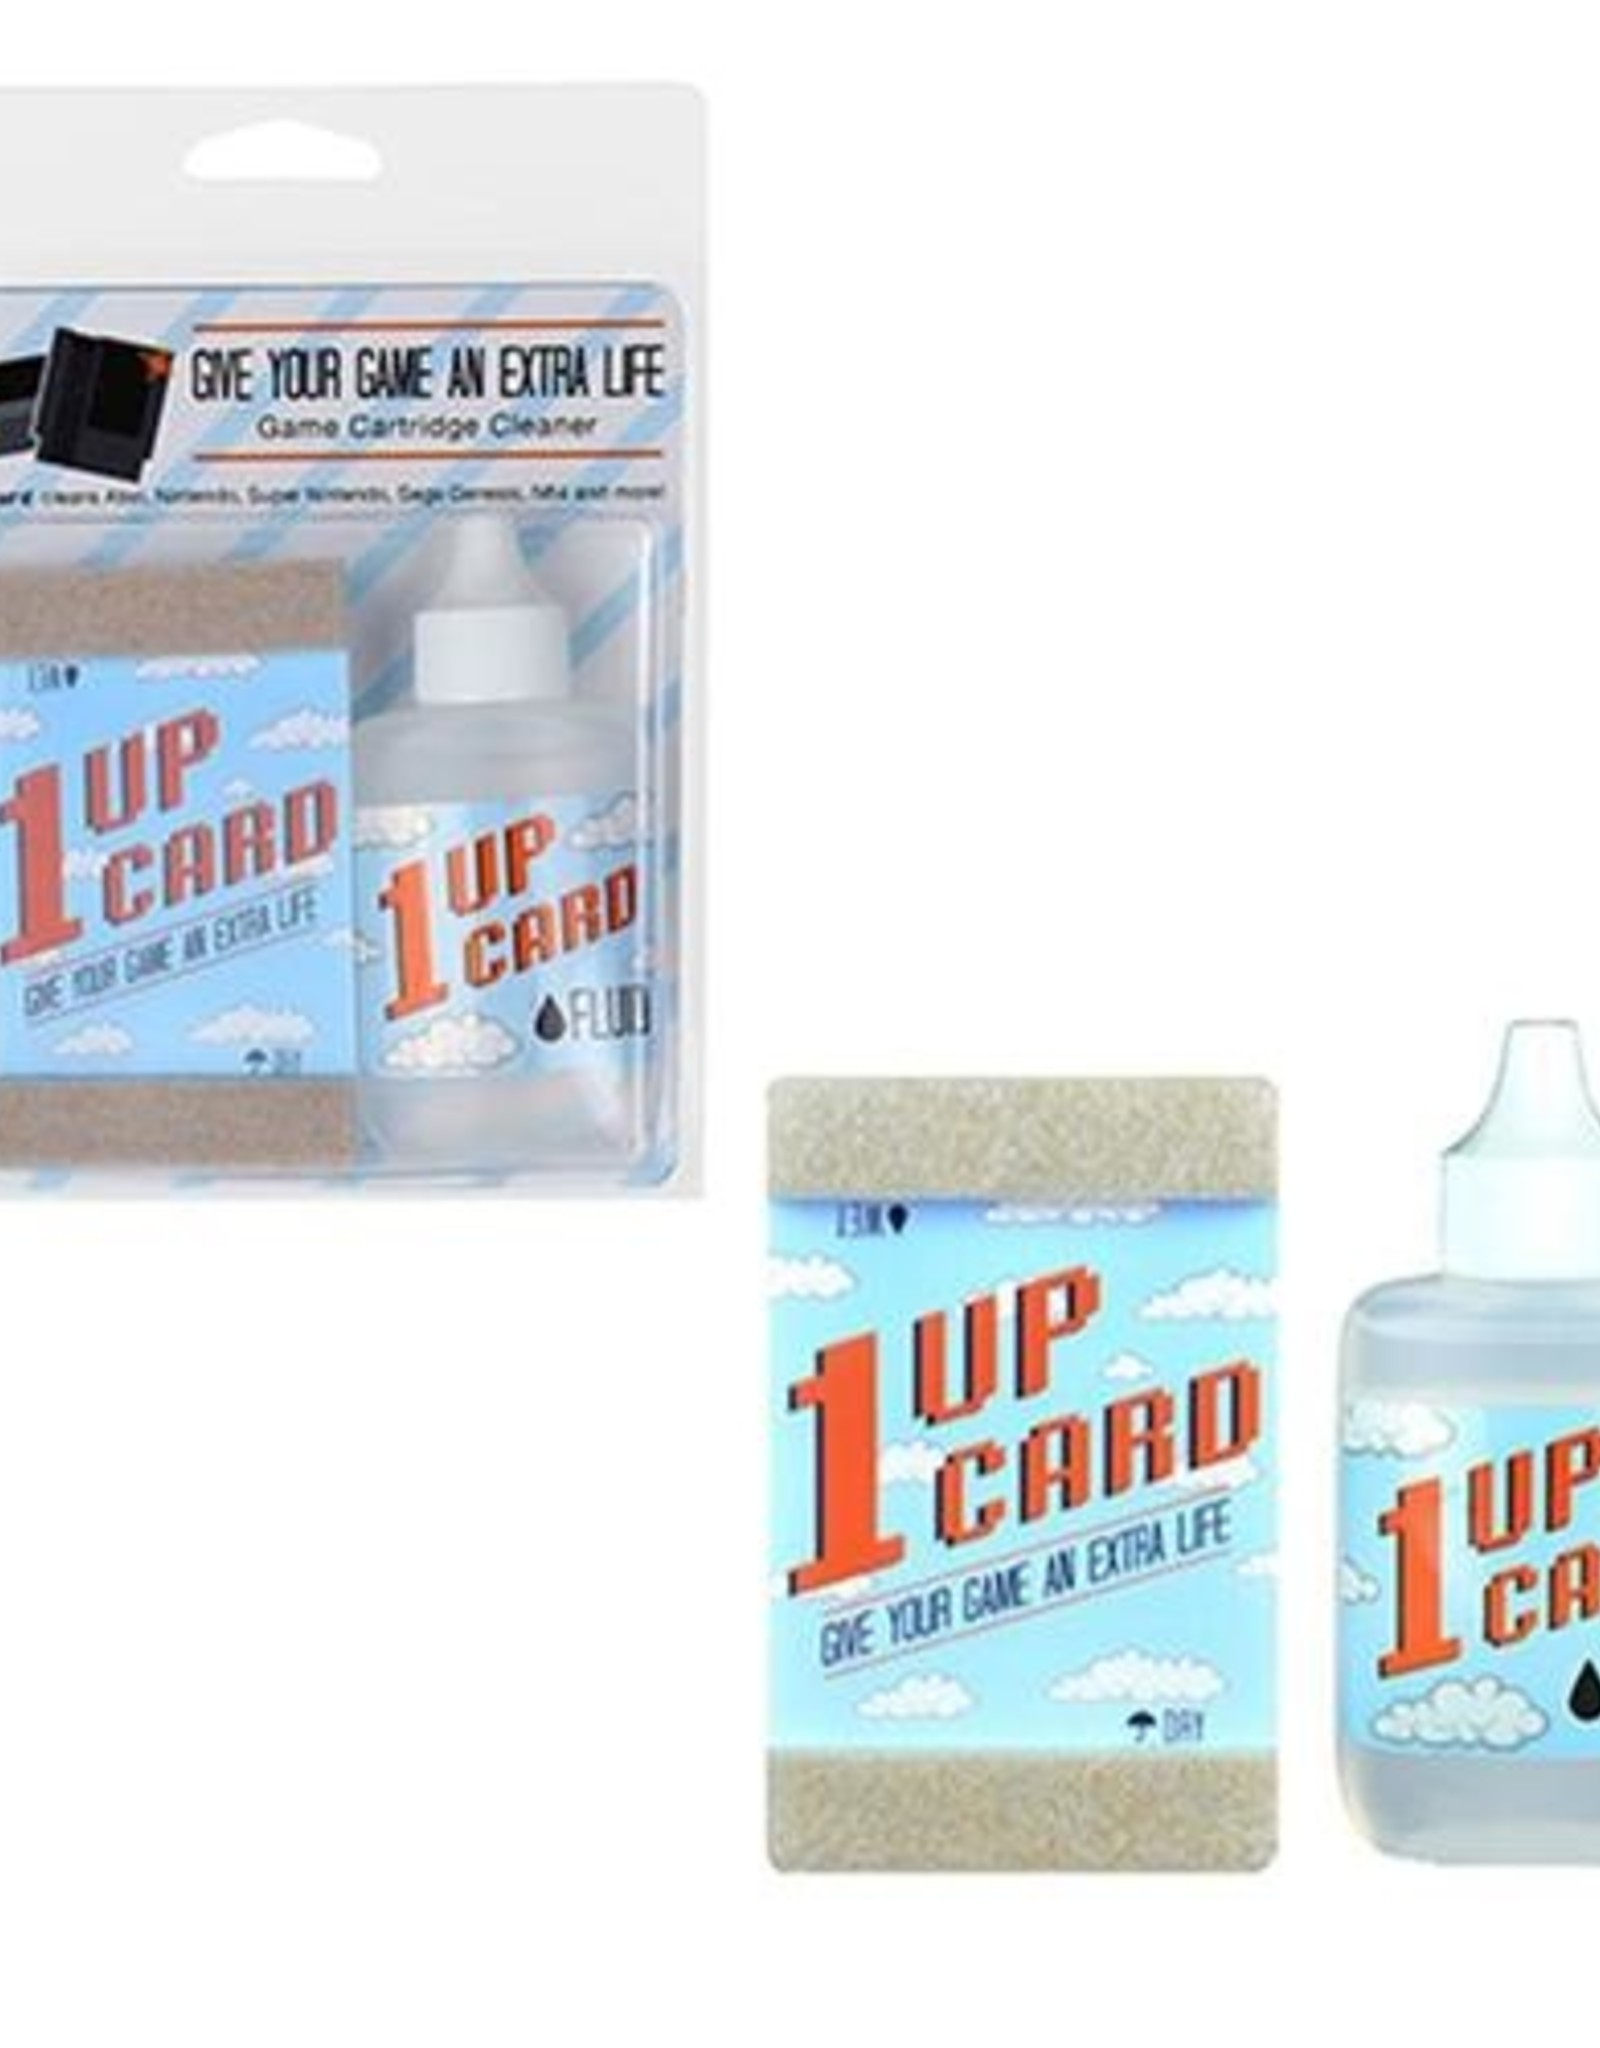 1UP Card Cartridge Cleaner (1 PC)